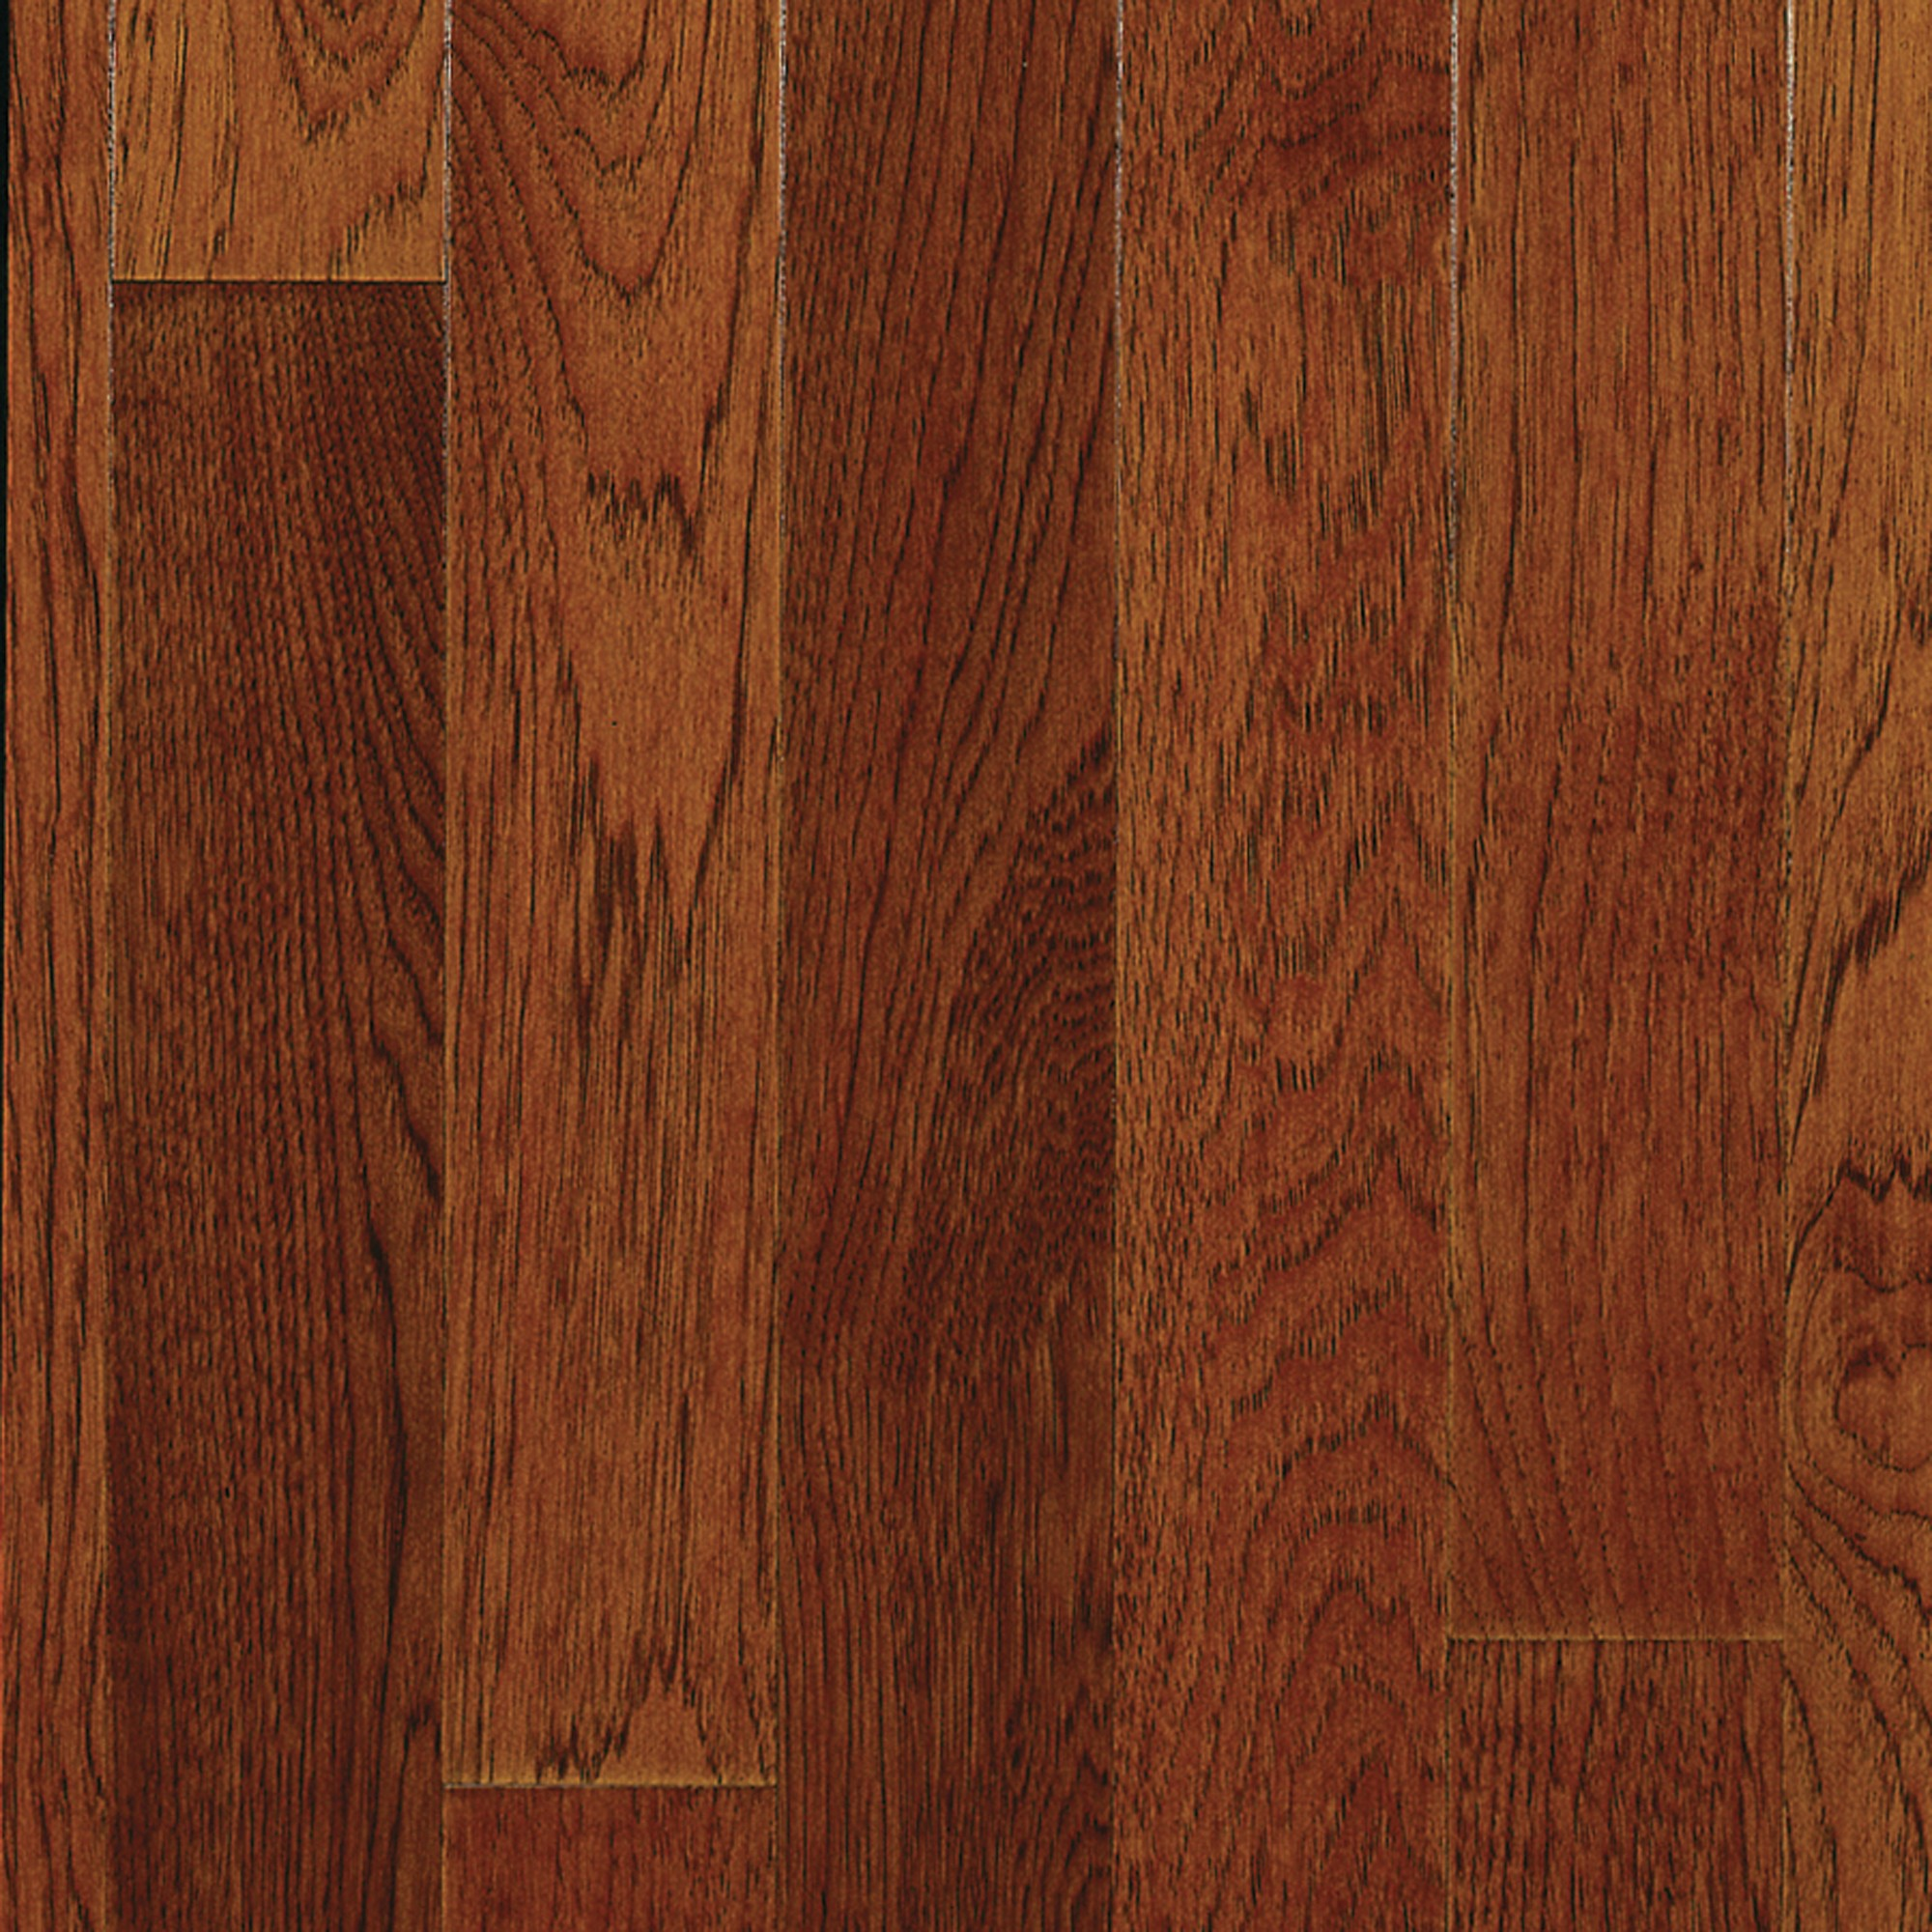 Smooth Hickory Old Mission Vintage Hardwood Flooring